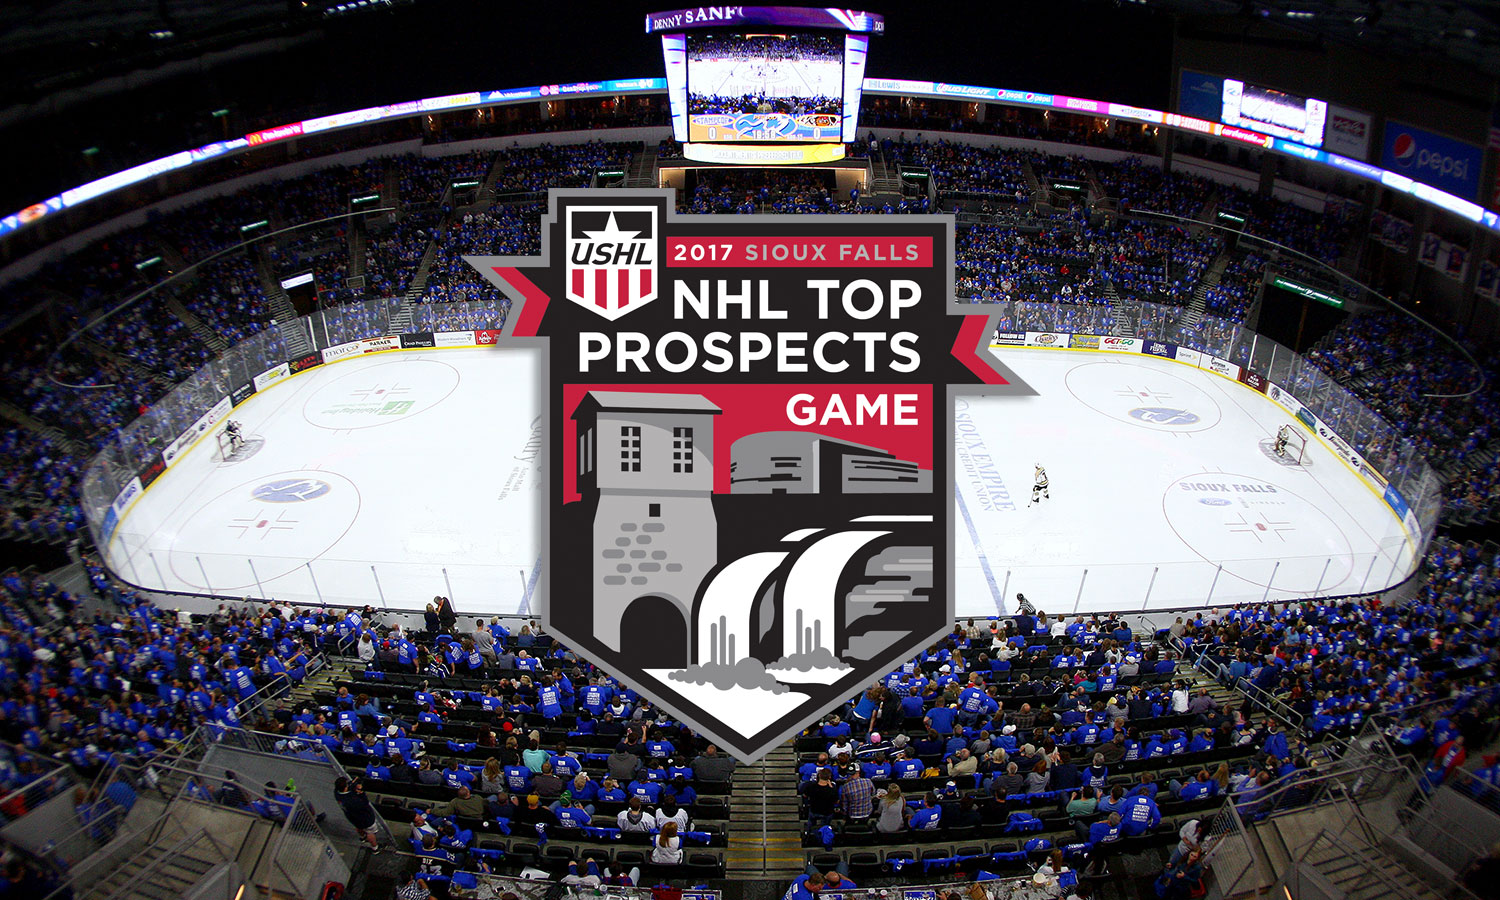 USHL: NHL Top Prospects Game Roster Announced